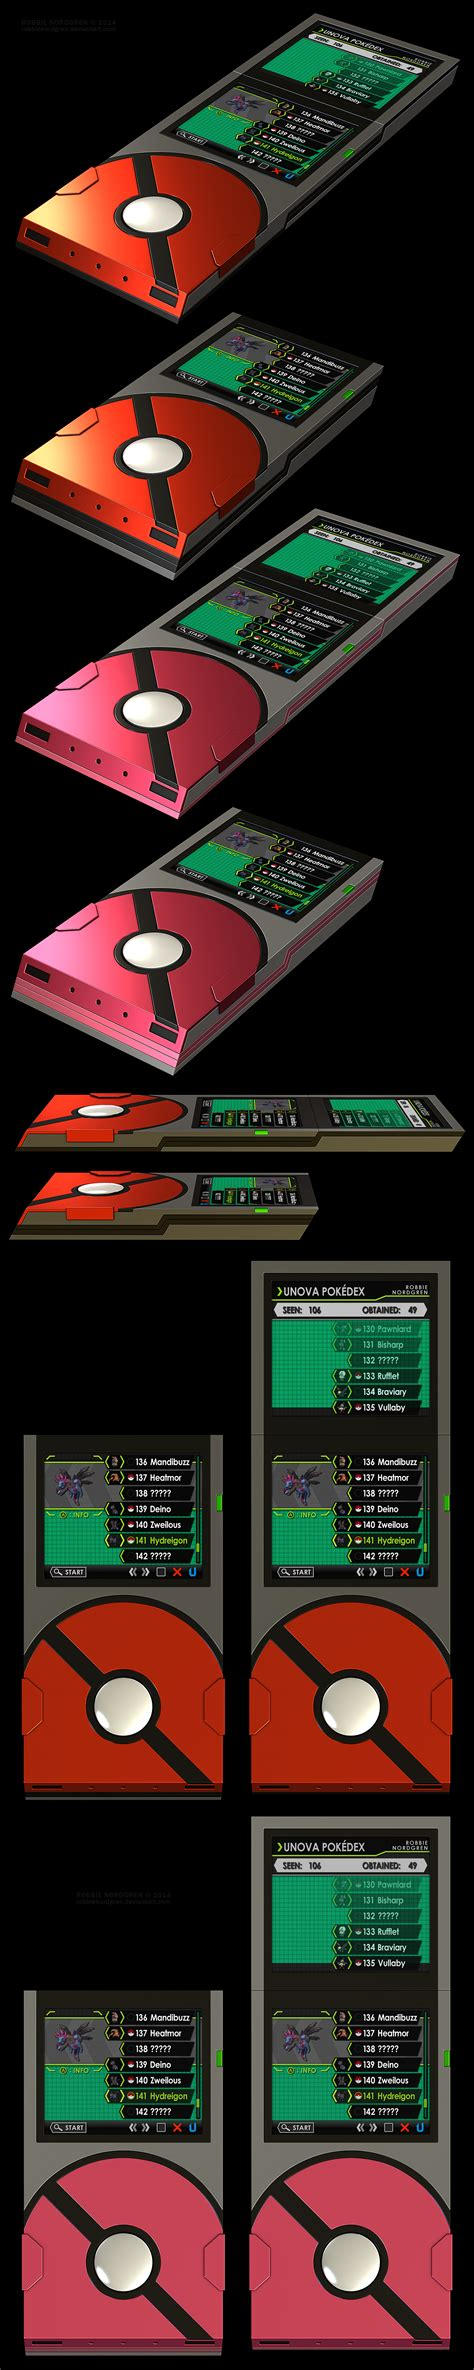 Unova Pokedex 3d 5th Generation By Robbienordgren On